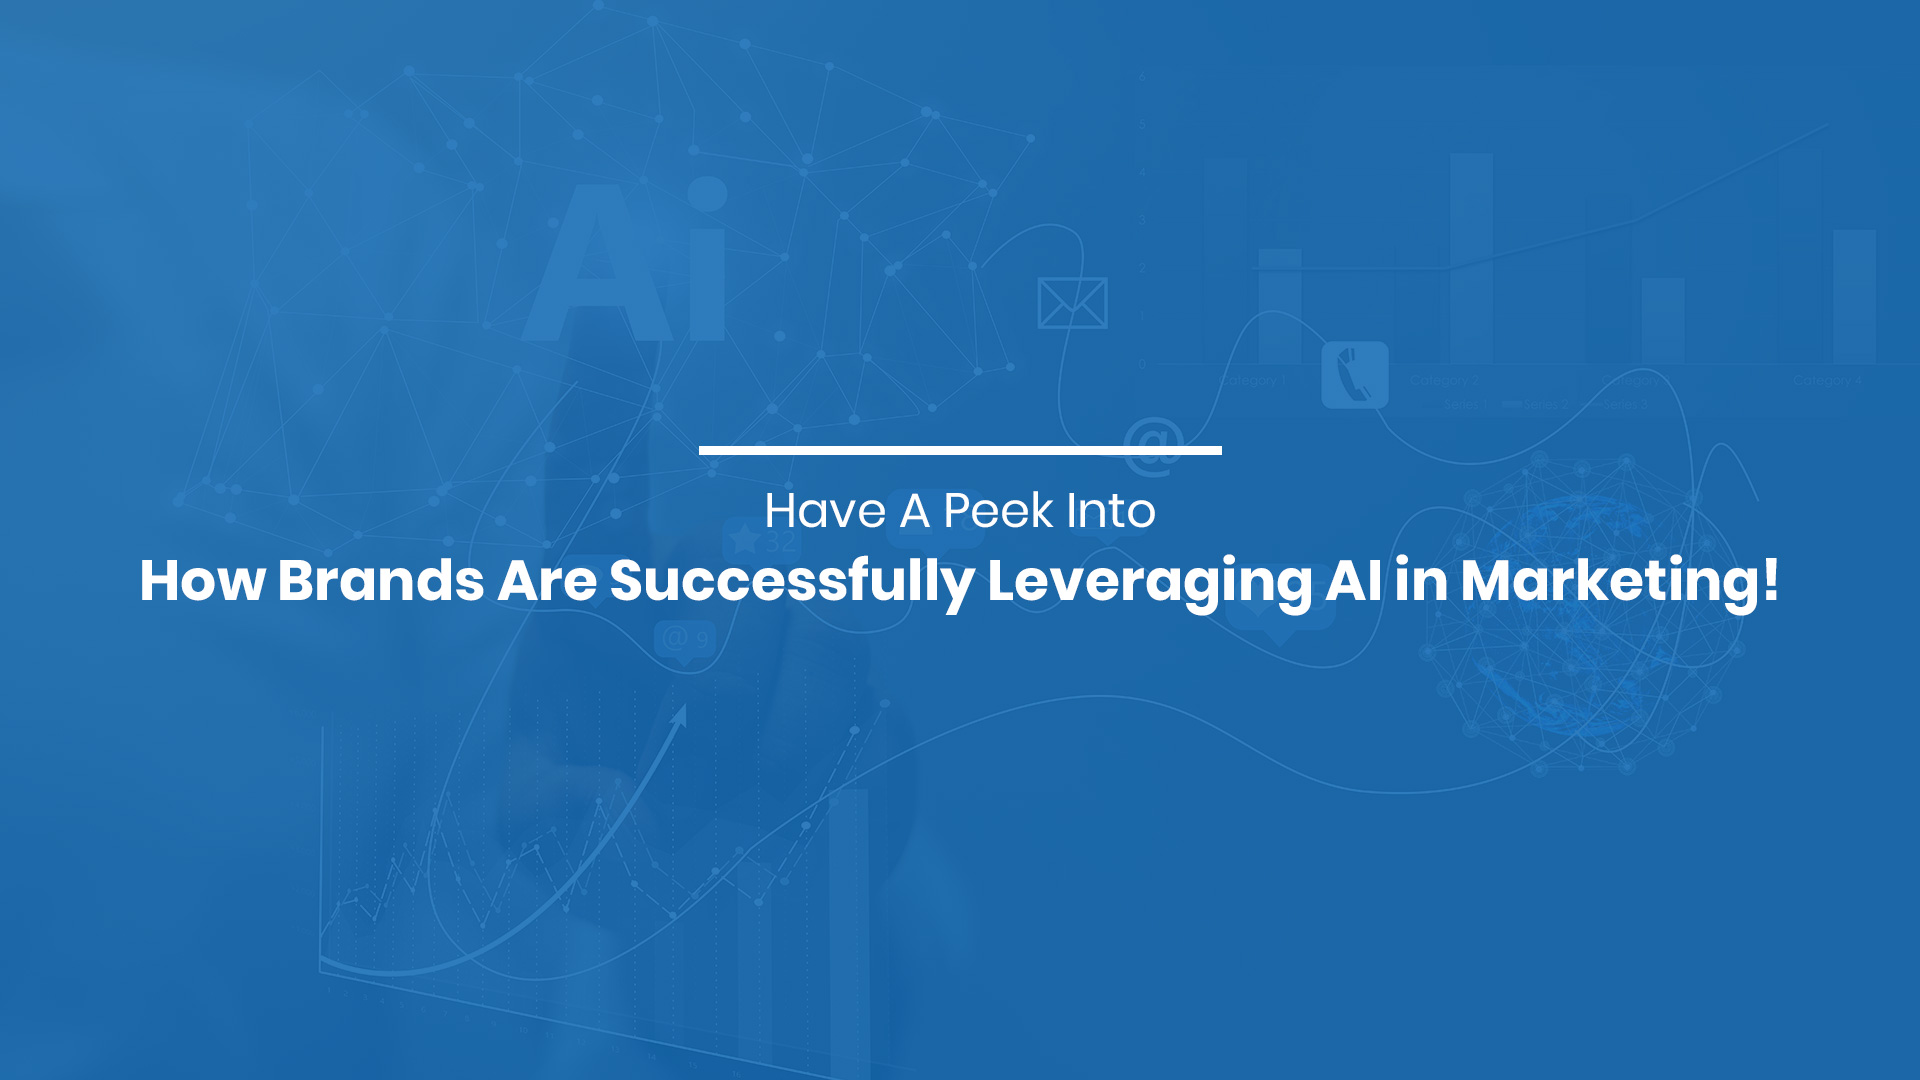 Have A Peek Into How Brands Are Successfully Leveraging AI in Marketing!